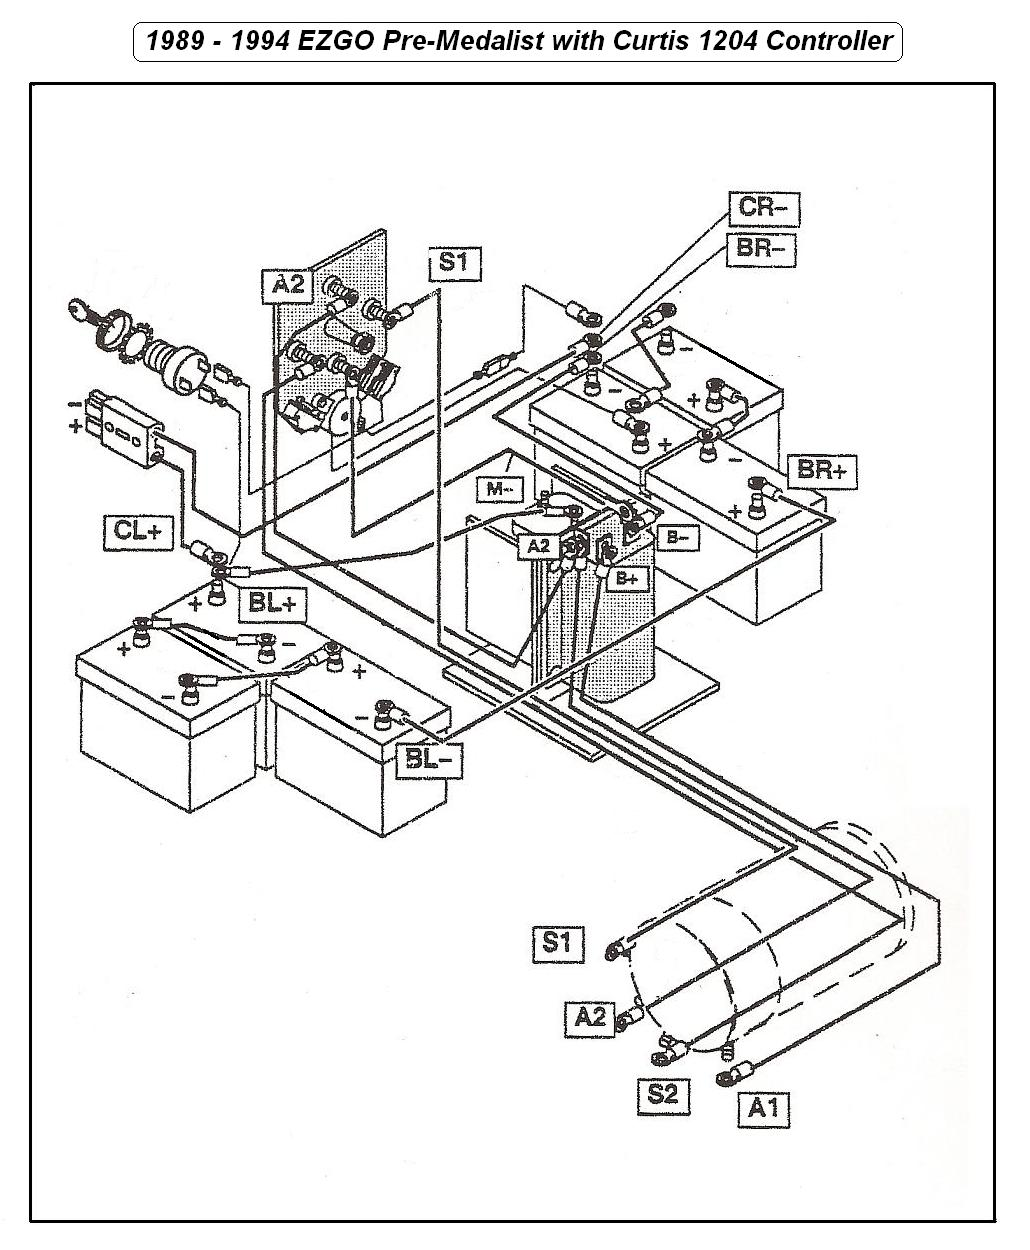 1985 ez go wiring diagram wiring wiring diagrams instructions rh ww35 freeautoresponder co 1996 ez go wiring diagram easy go golf cart battery wiring